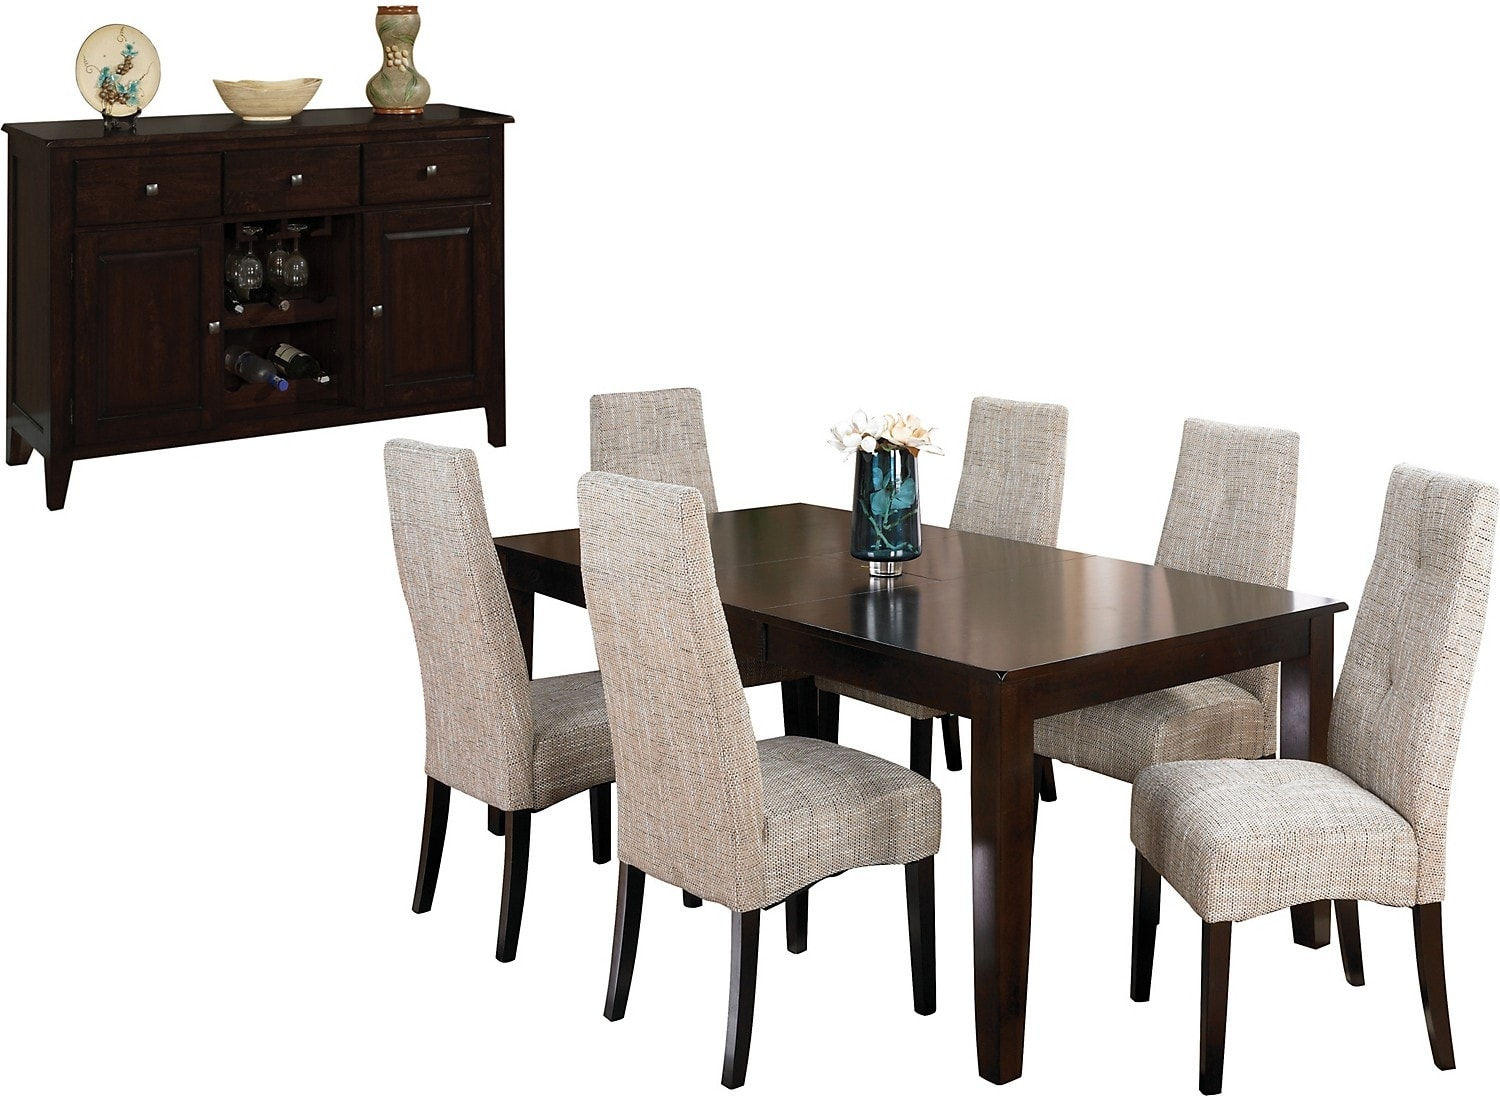 Dakota 8 Piece Dining Package w/ Linen Chairs